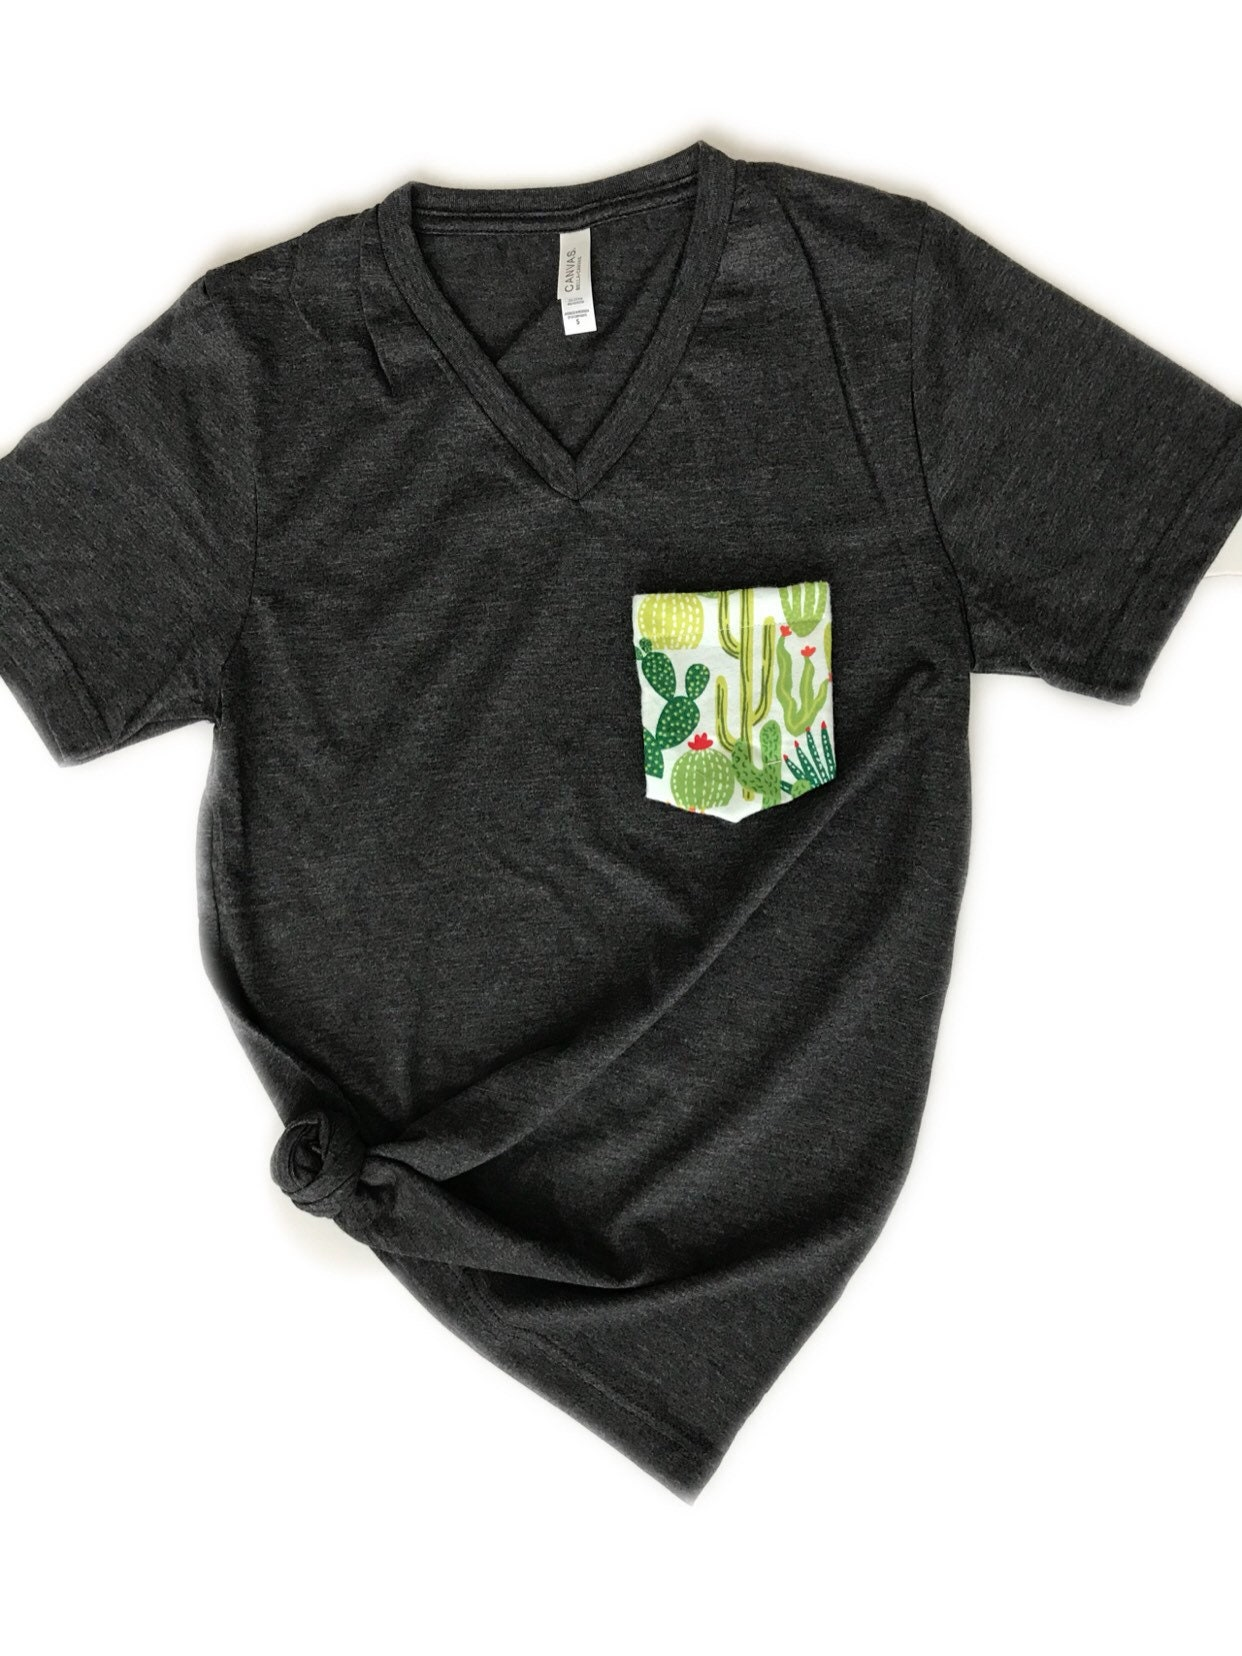 904e1480945 Cactus Pocket T-Shirt